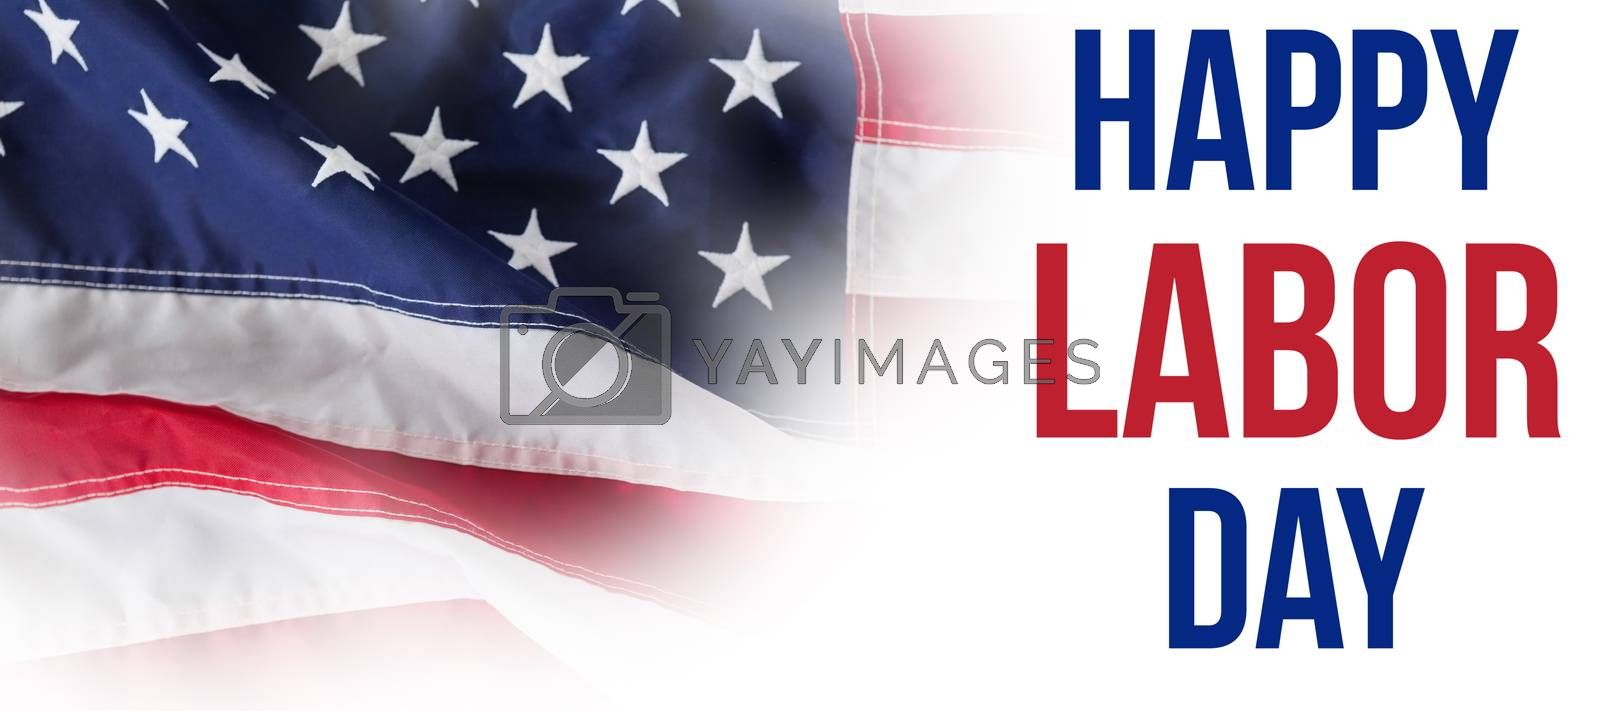 Composite image of digital composite image of happy labor day text with tools by Wavebreakmedia